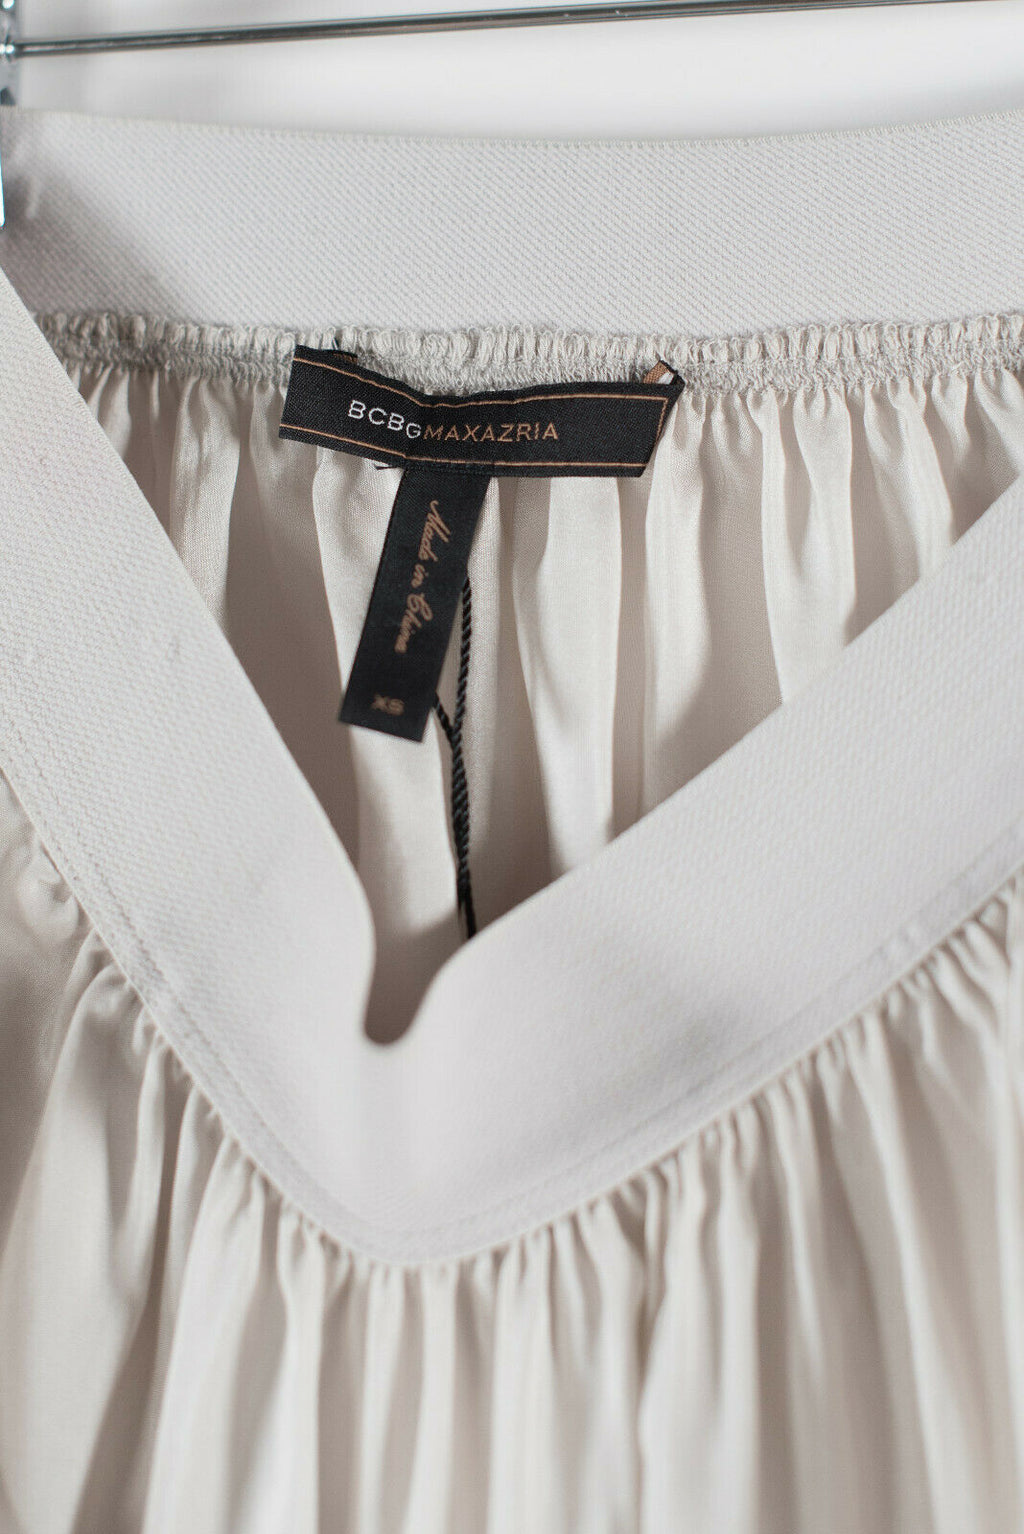 BCBG MaxAzria Womens XS White Mini Skirt Elastic Waist Ruched Short Layered NWT